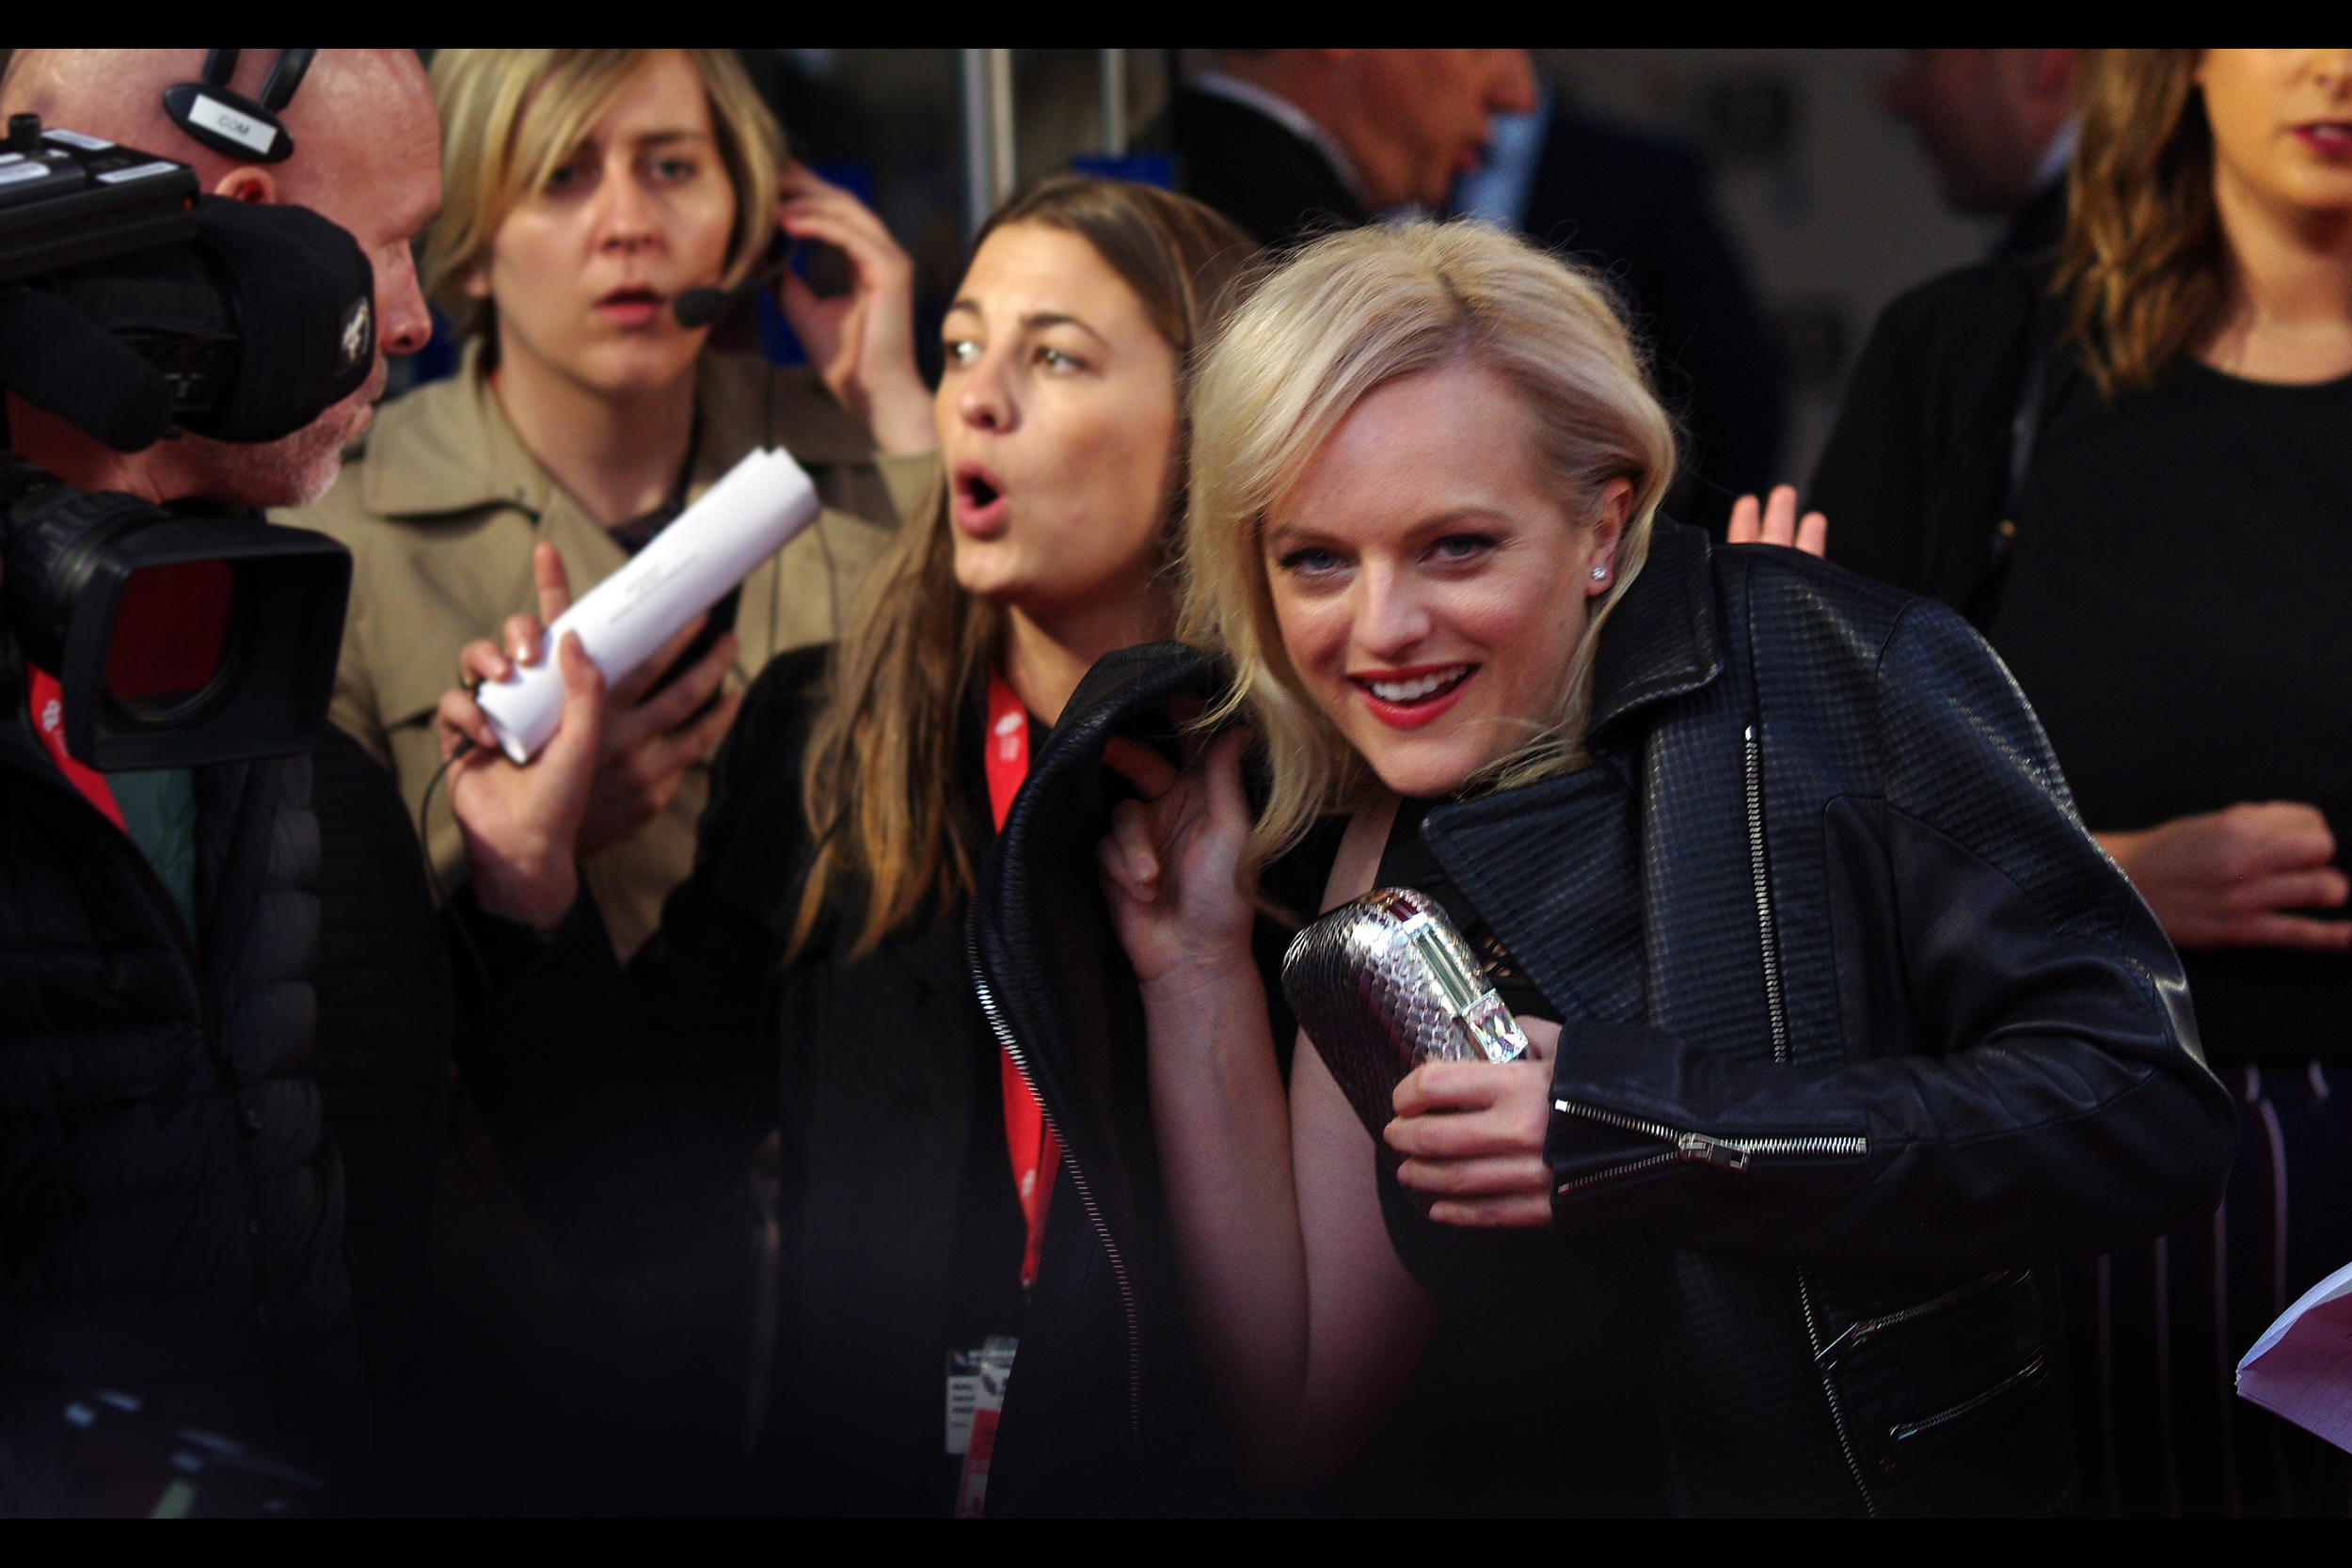 I think Elisabeth Moss would be very cool to have as a friend. Might track her down on facebook.